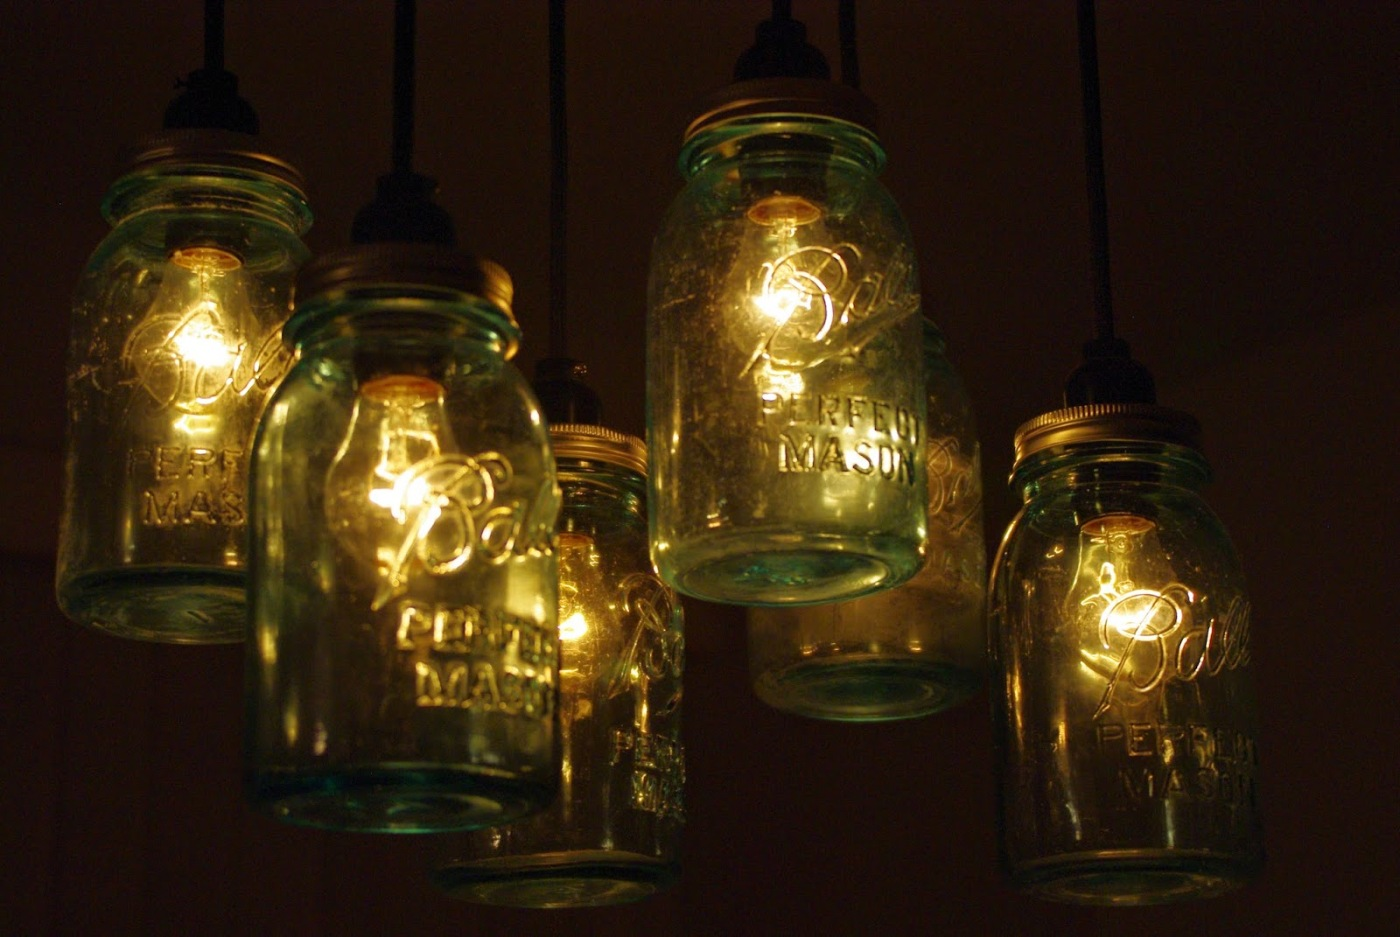 Diy mason jar chandelier reclaimed diy mason jar chandelier arubaitofo Image collections